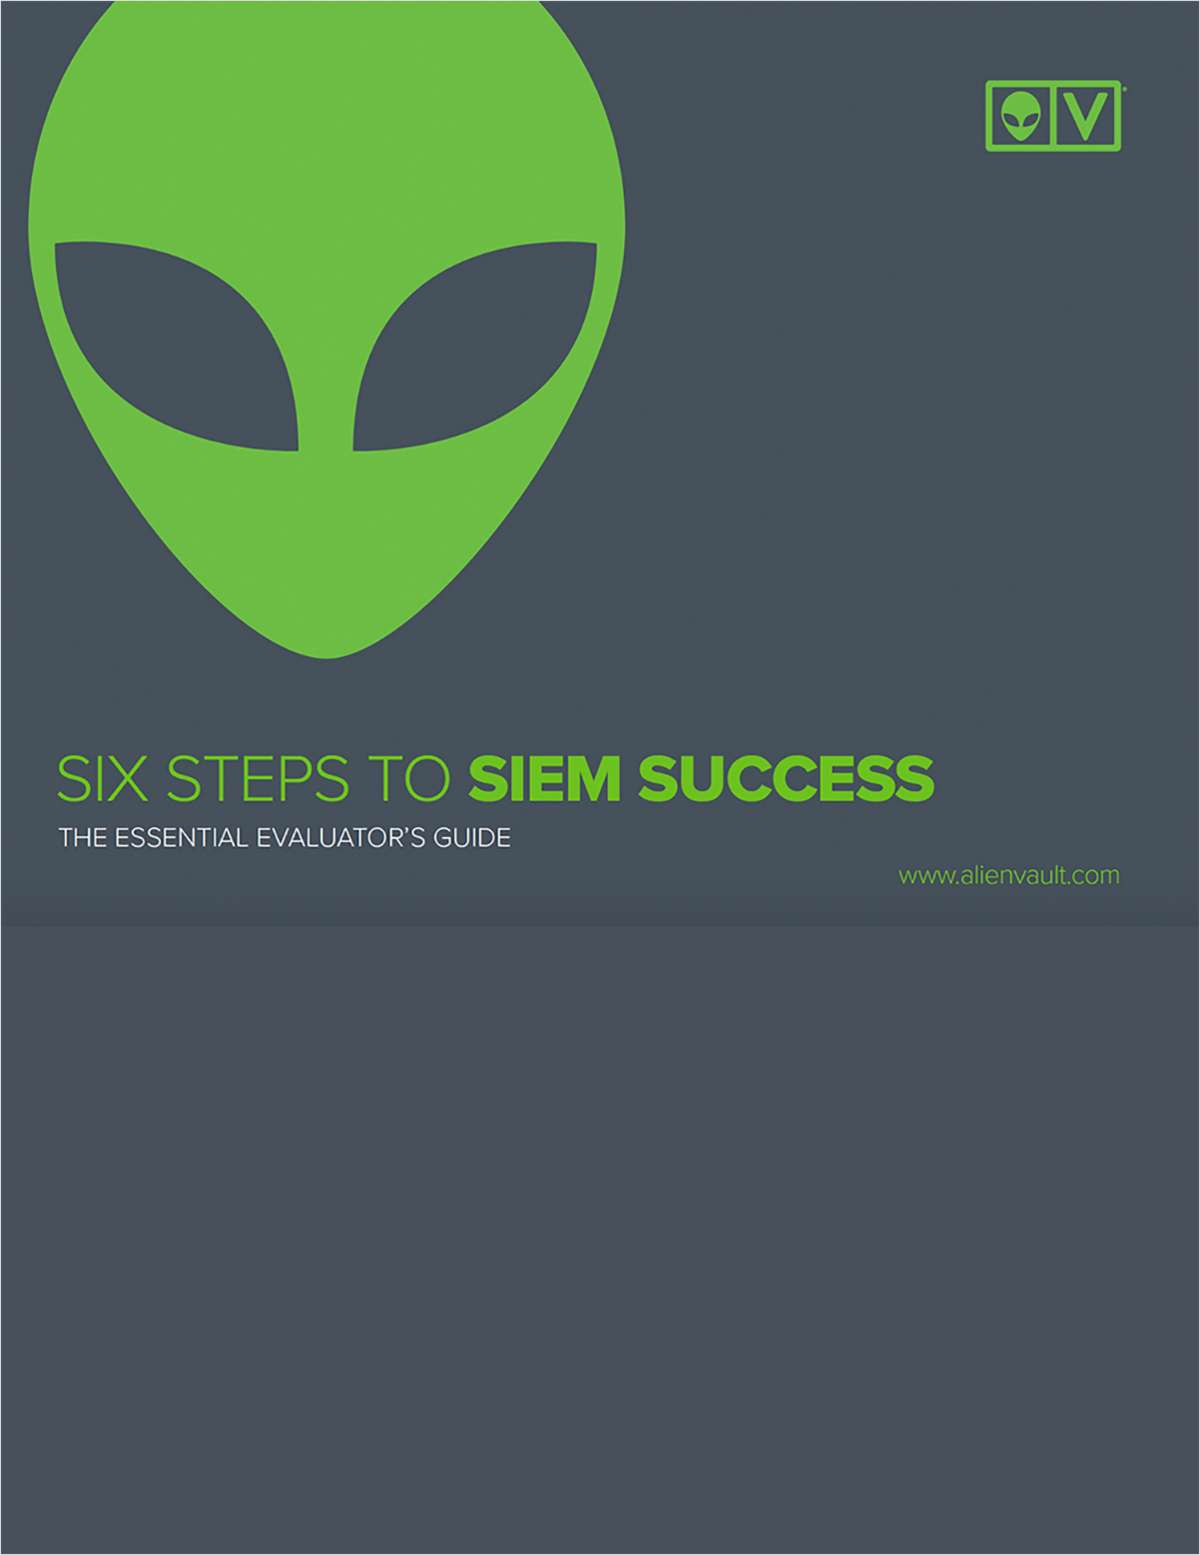 6 Steps to SIEM Success